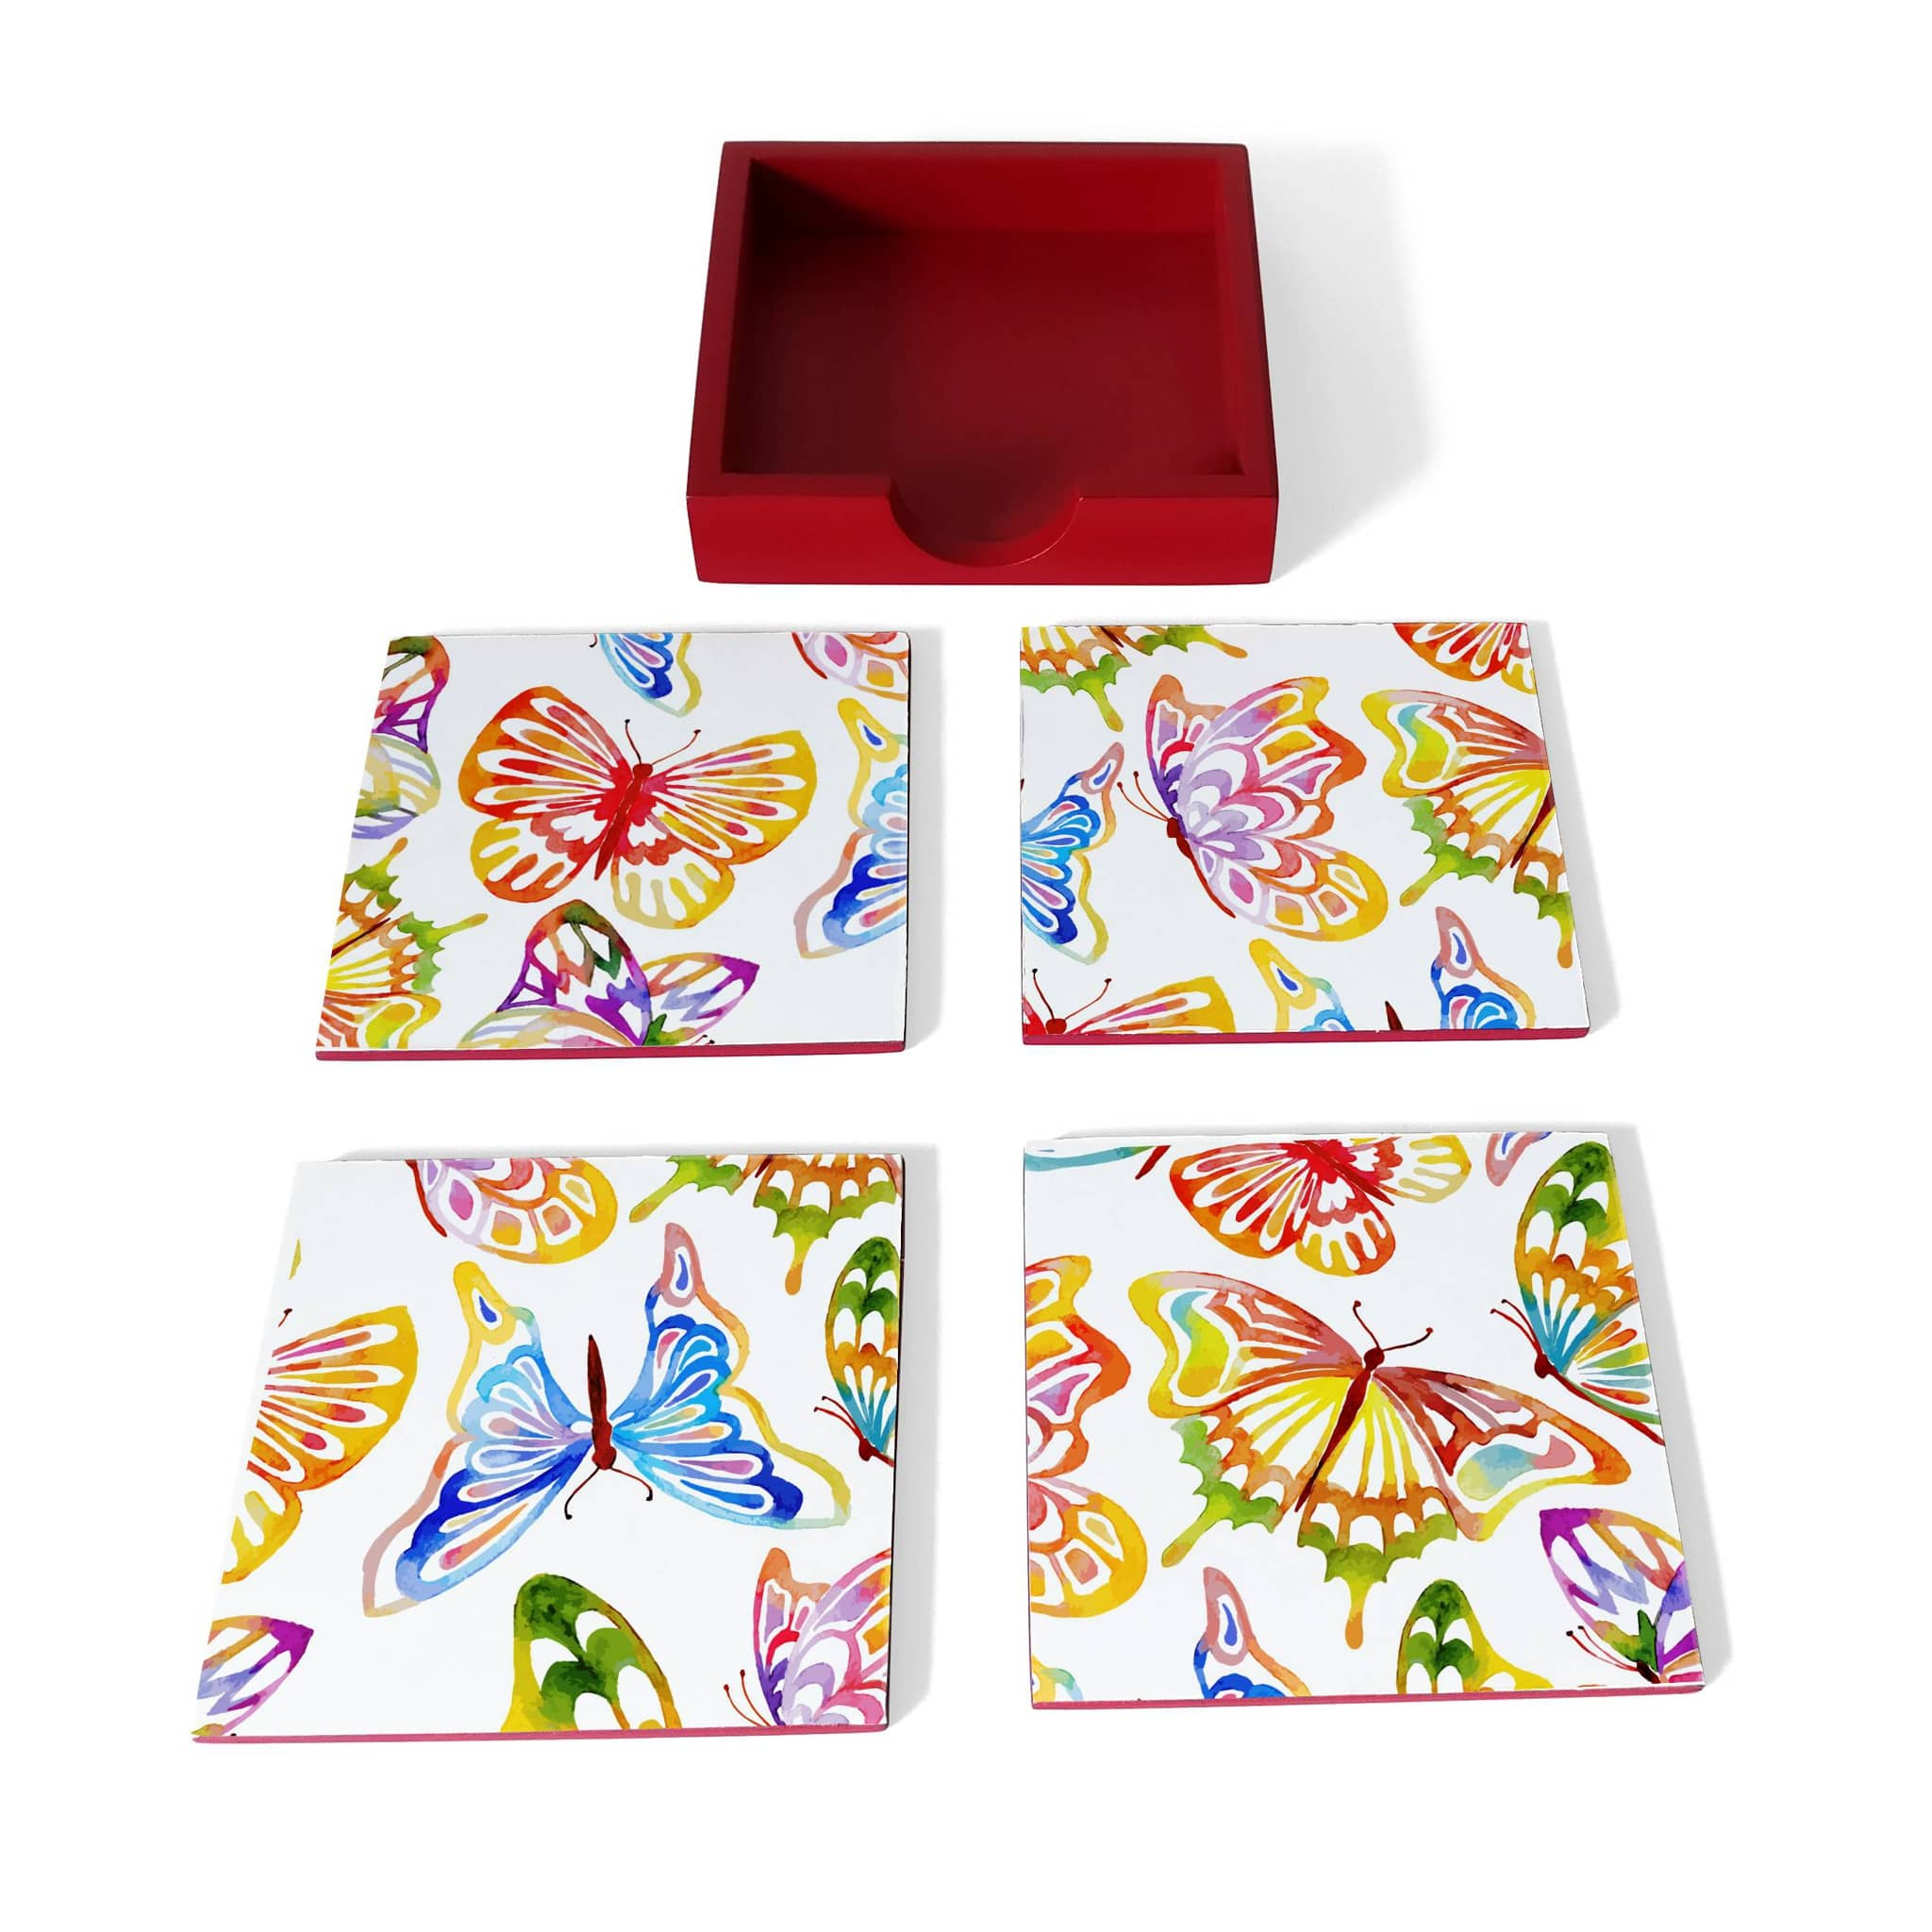 Watercolour Butterflies Coaster Set with Box